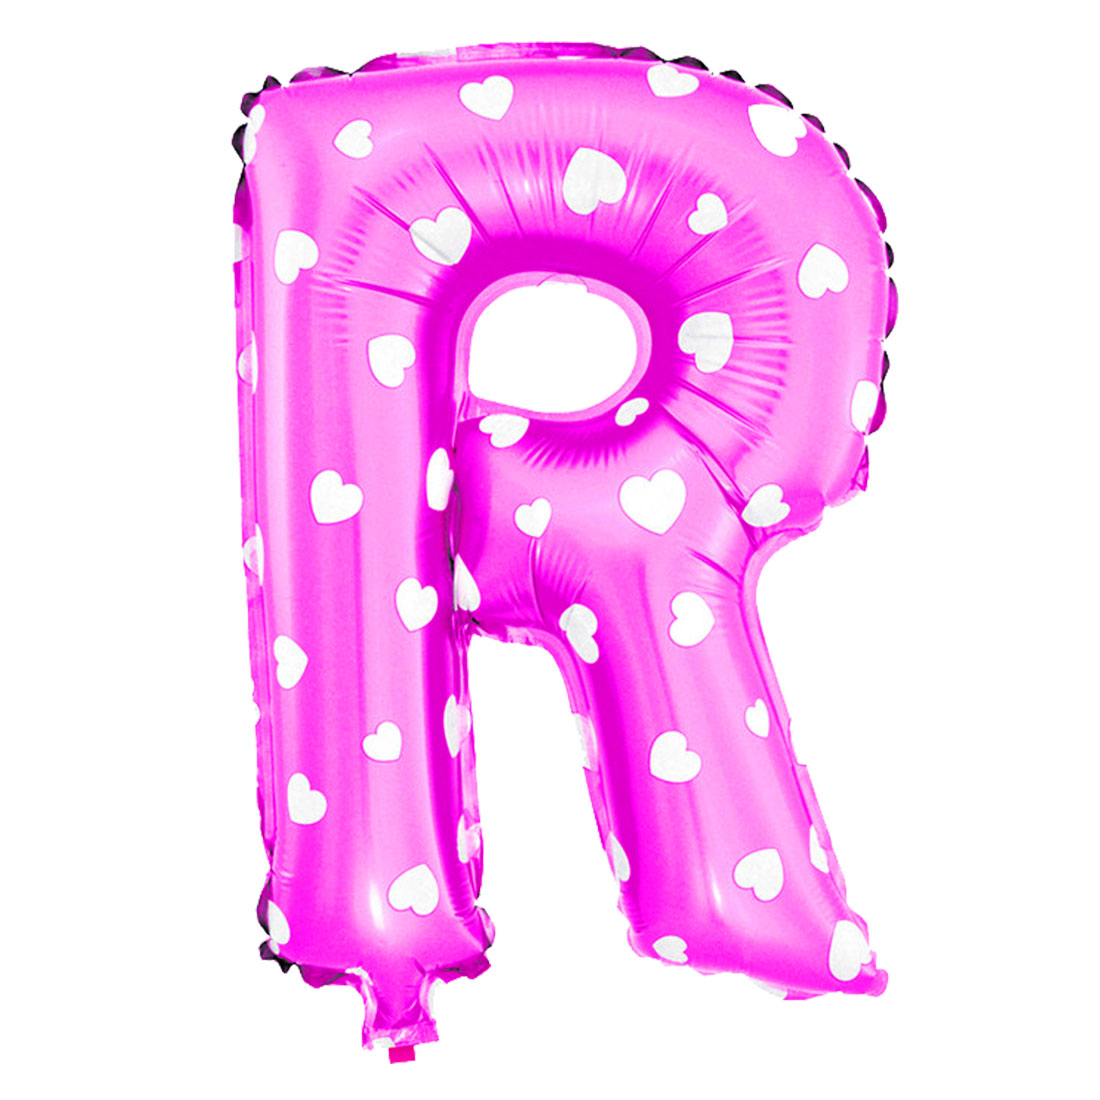 Unique Bargains Foil Letter R Heart Pattern Helium Balloon Birthday Wedding Decor Fuchsia 16""